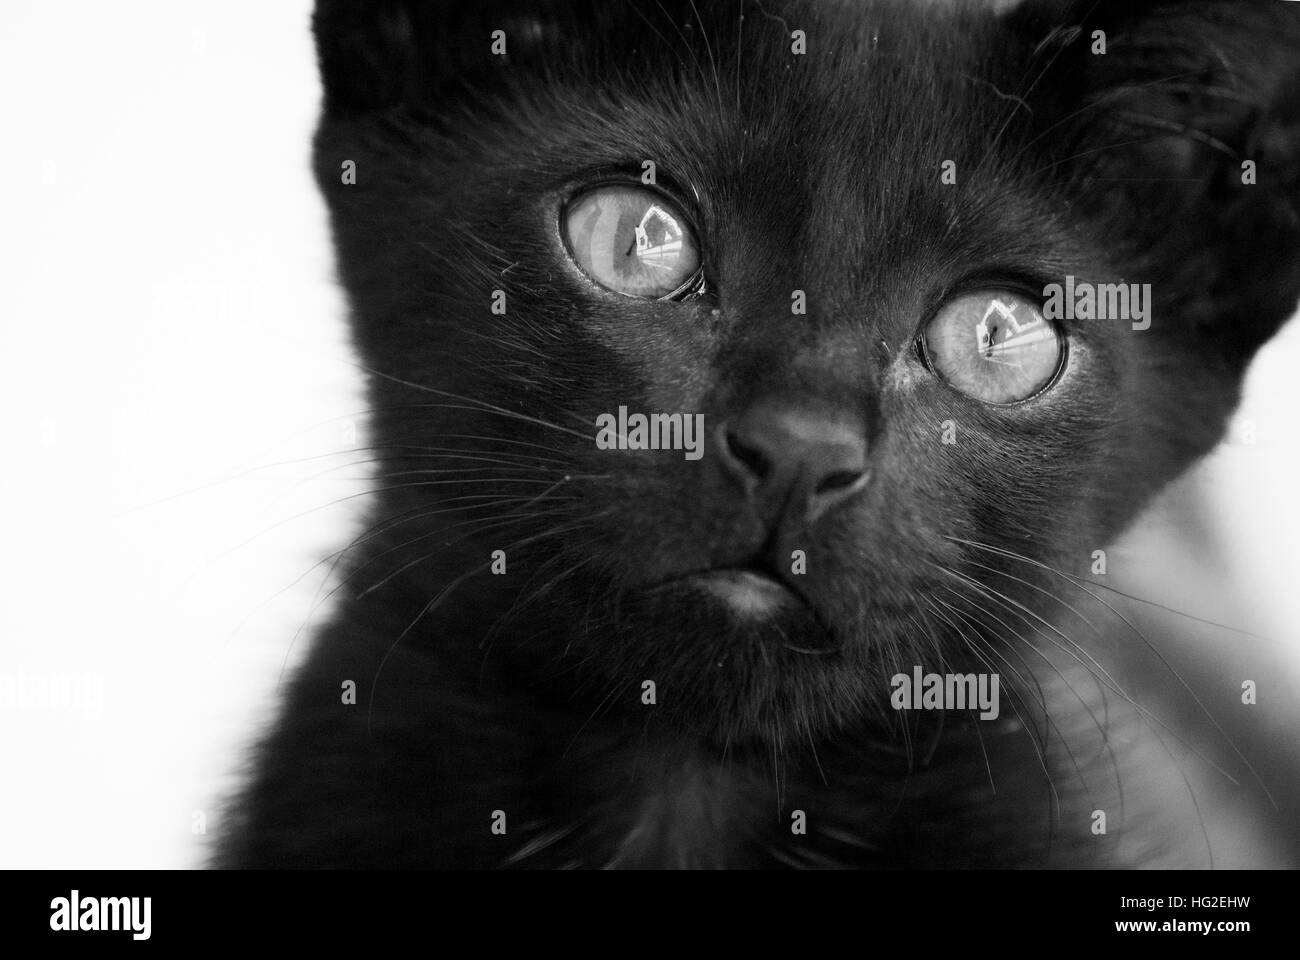 The sad Cat - Stock Image